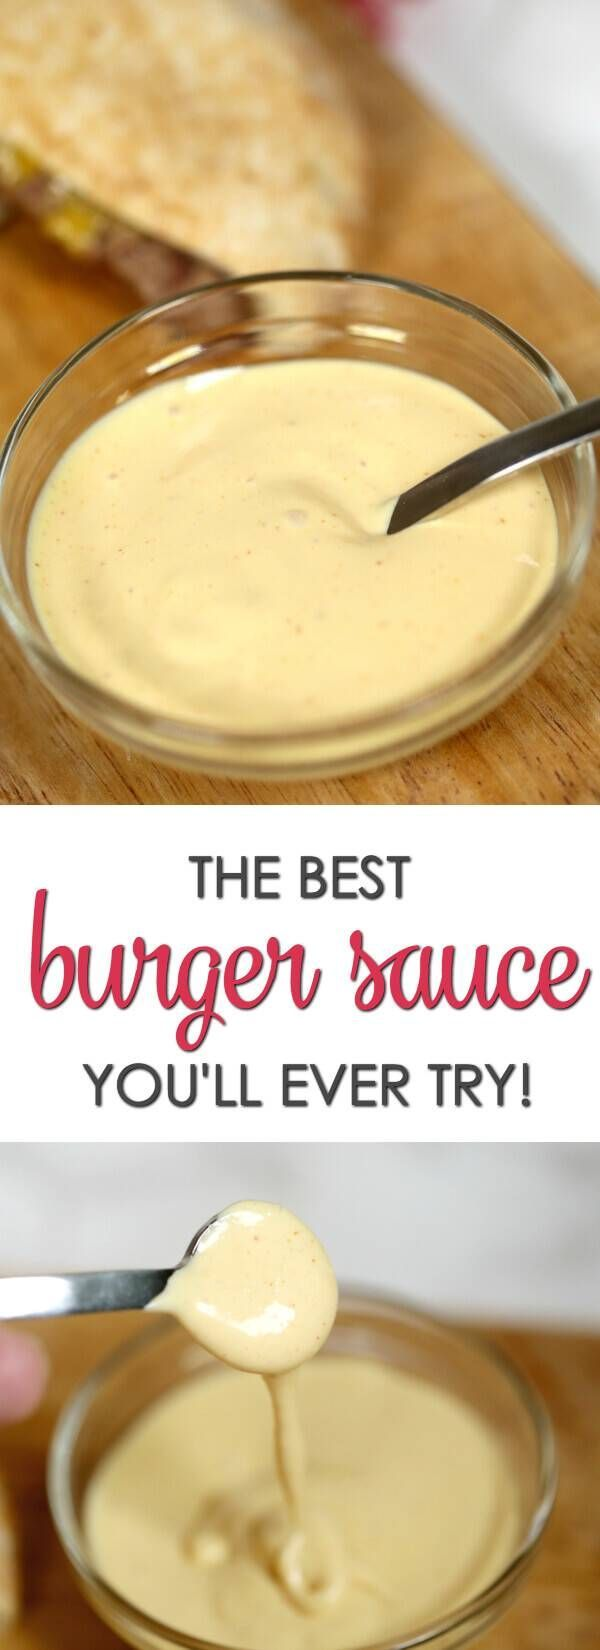 This is the BEST burger sauce recipe youll ever try! It goes great on burgers, fries and more